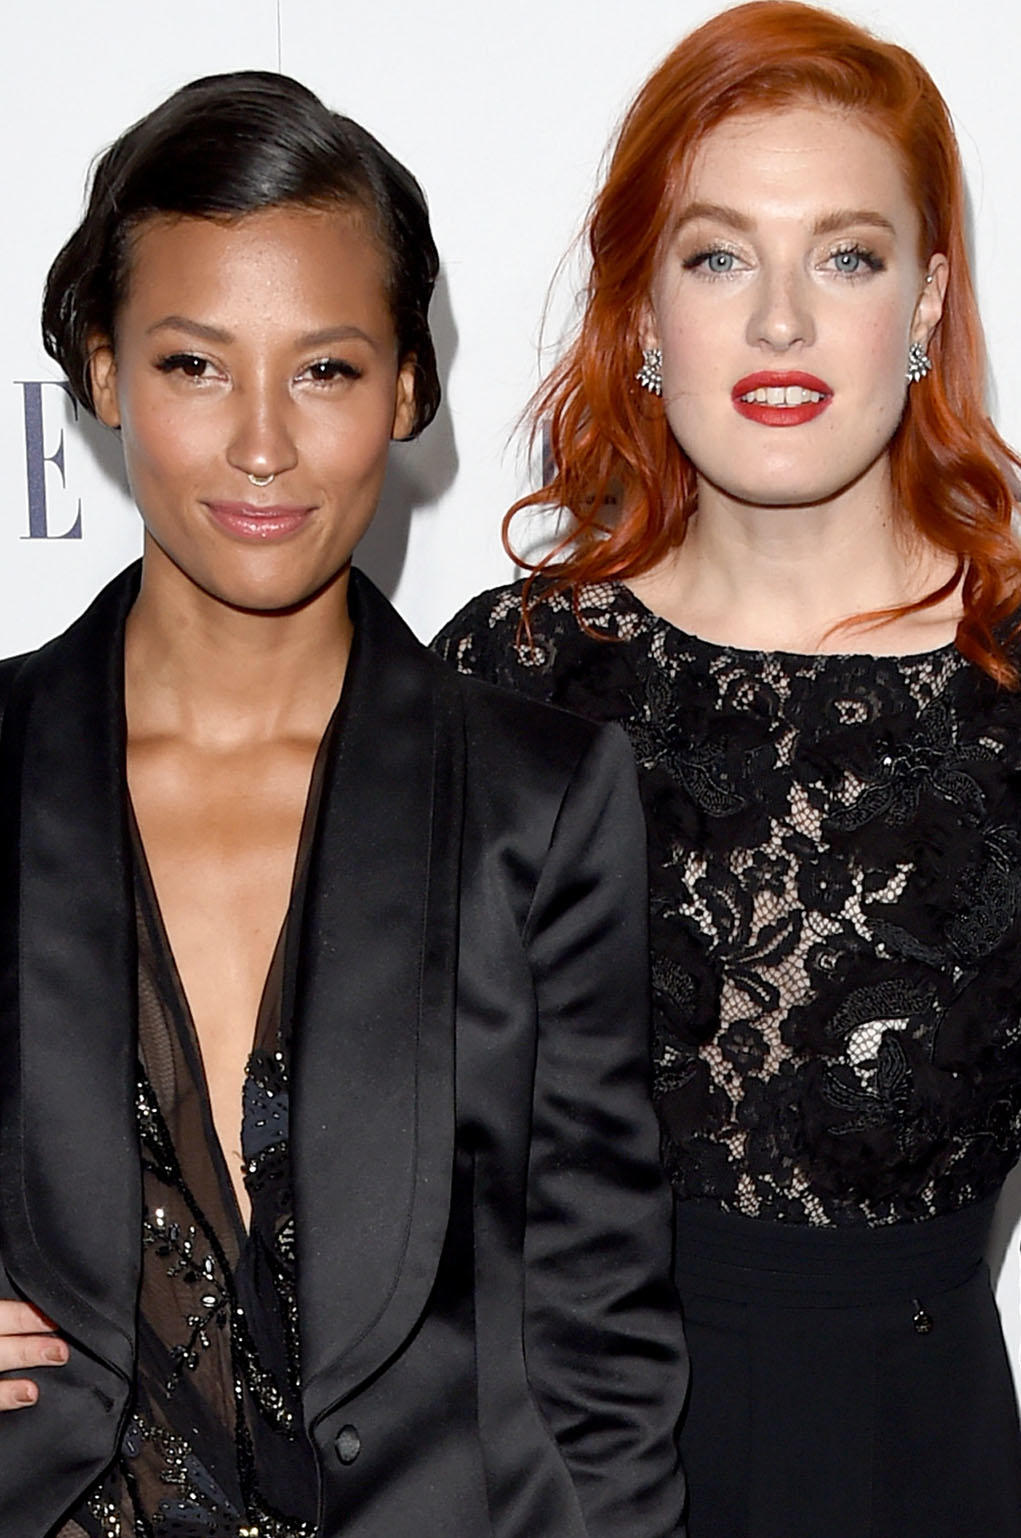 Aino Jawo and Caroline Hjelt of Icona Pop at the 22nd Annual Elle Women in Hollywood Awards in Beverly Hills, CA.